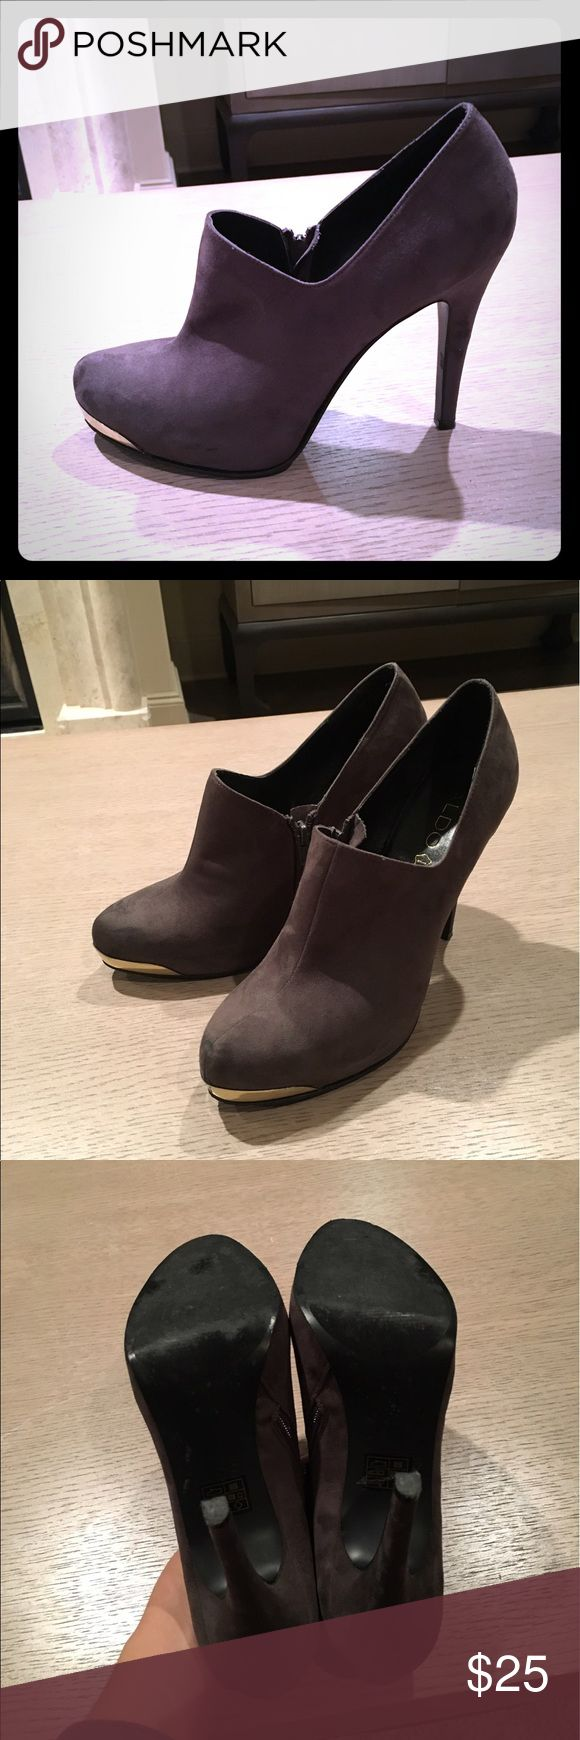 Suede ankle boots Very comfortable ankle boots in great condition Aldo Shoes Ankle Boots & Booties